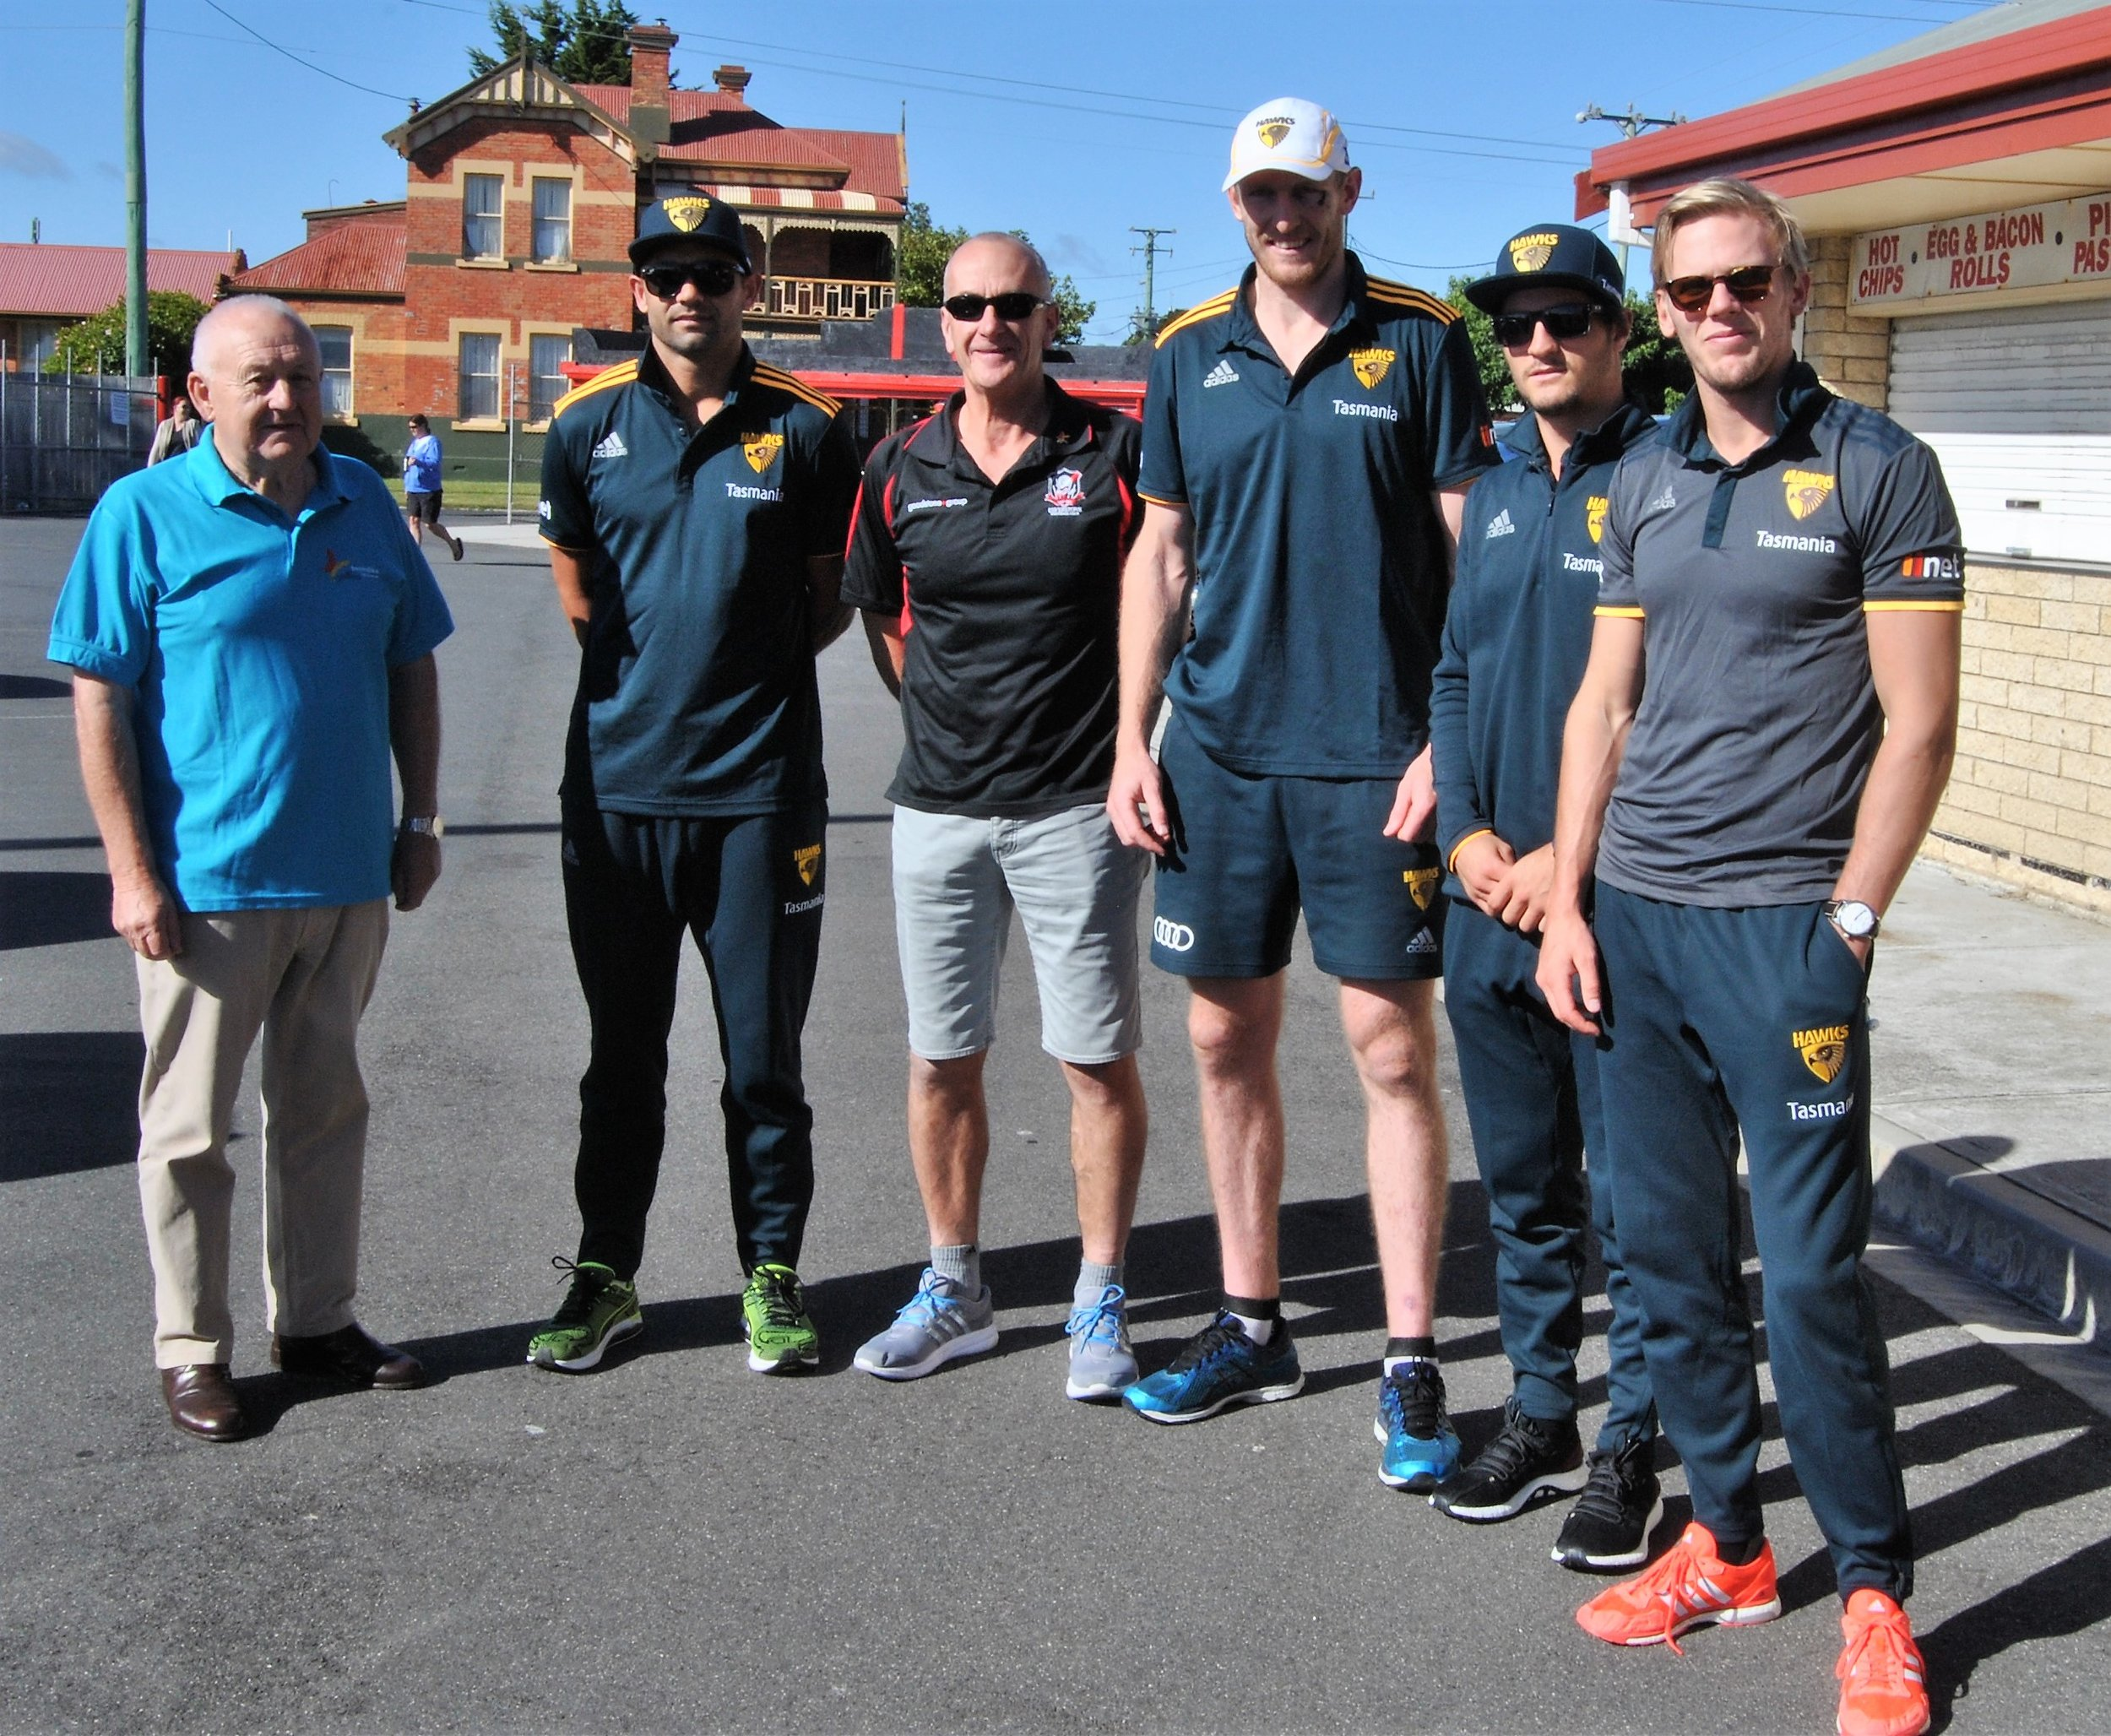 Rotarian Lindsay Morgan with Hawthorn players Ben McEvoy, Shaun Burgoyne, Will Langford and Kade Stewart, and support staff manager Kristian Hall